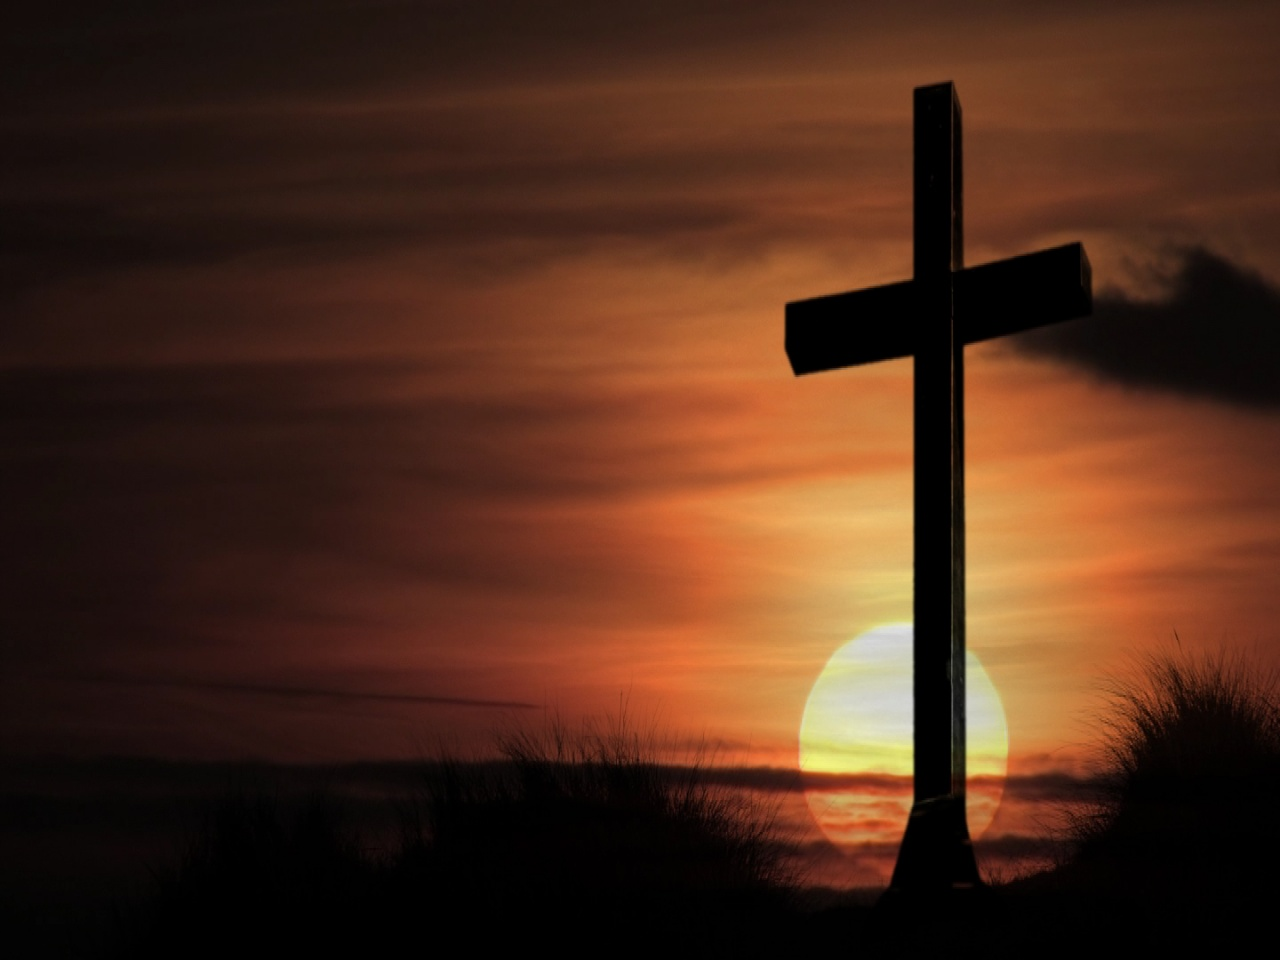 Cross in Sunset Wallpaper   Christian Wallpapers and Backgrounds 1280x960